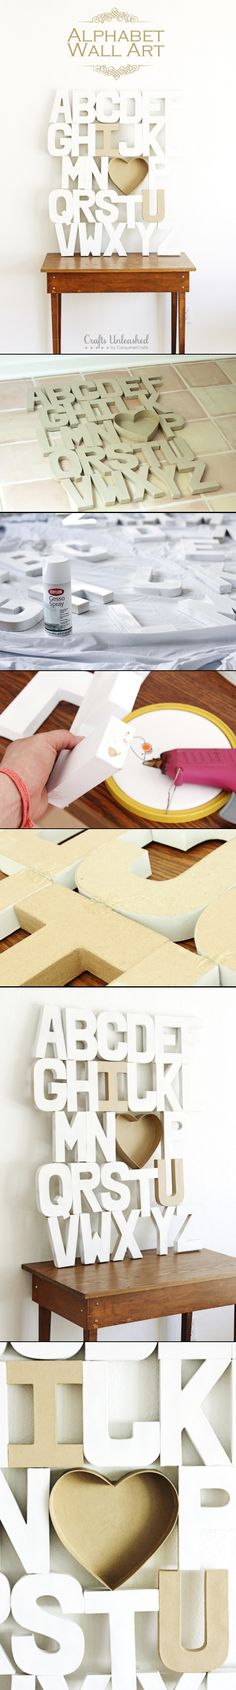 Alphabet Wall Craft - would be cute for a baby / kid room